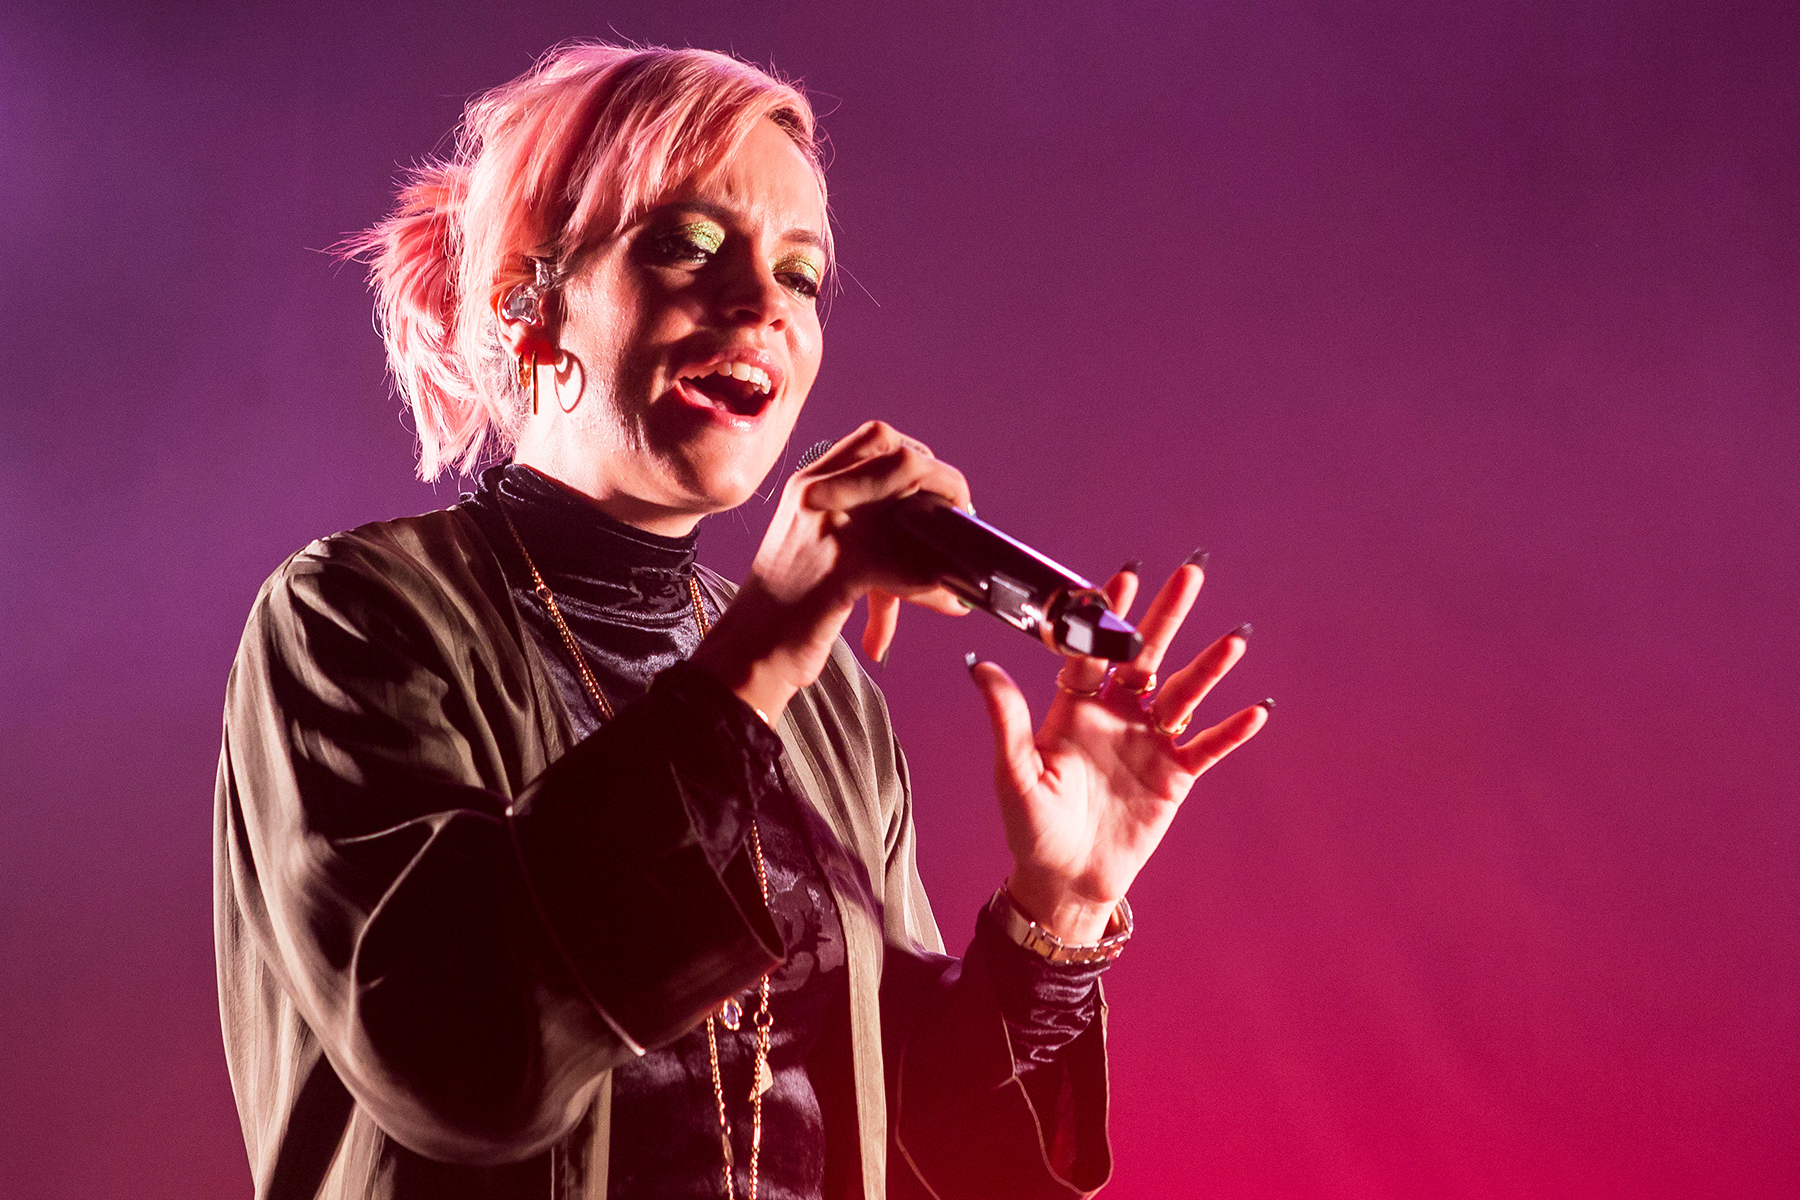 Hear Lily Allen's Soulful Cover of Tears for Fears' 'Mad World'